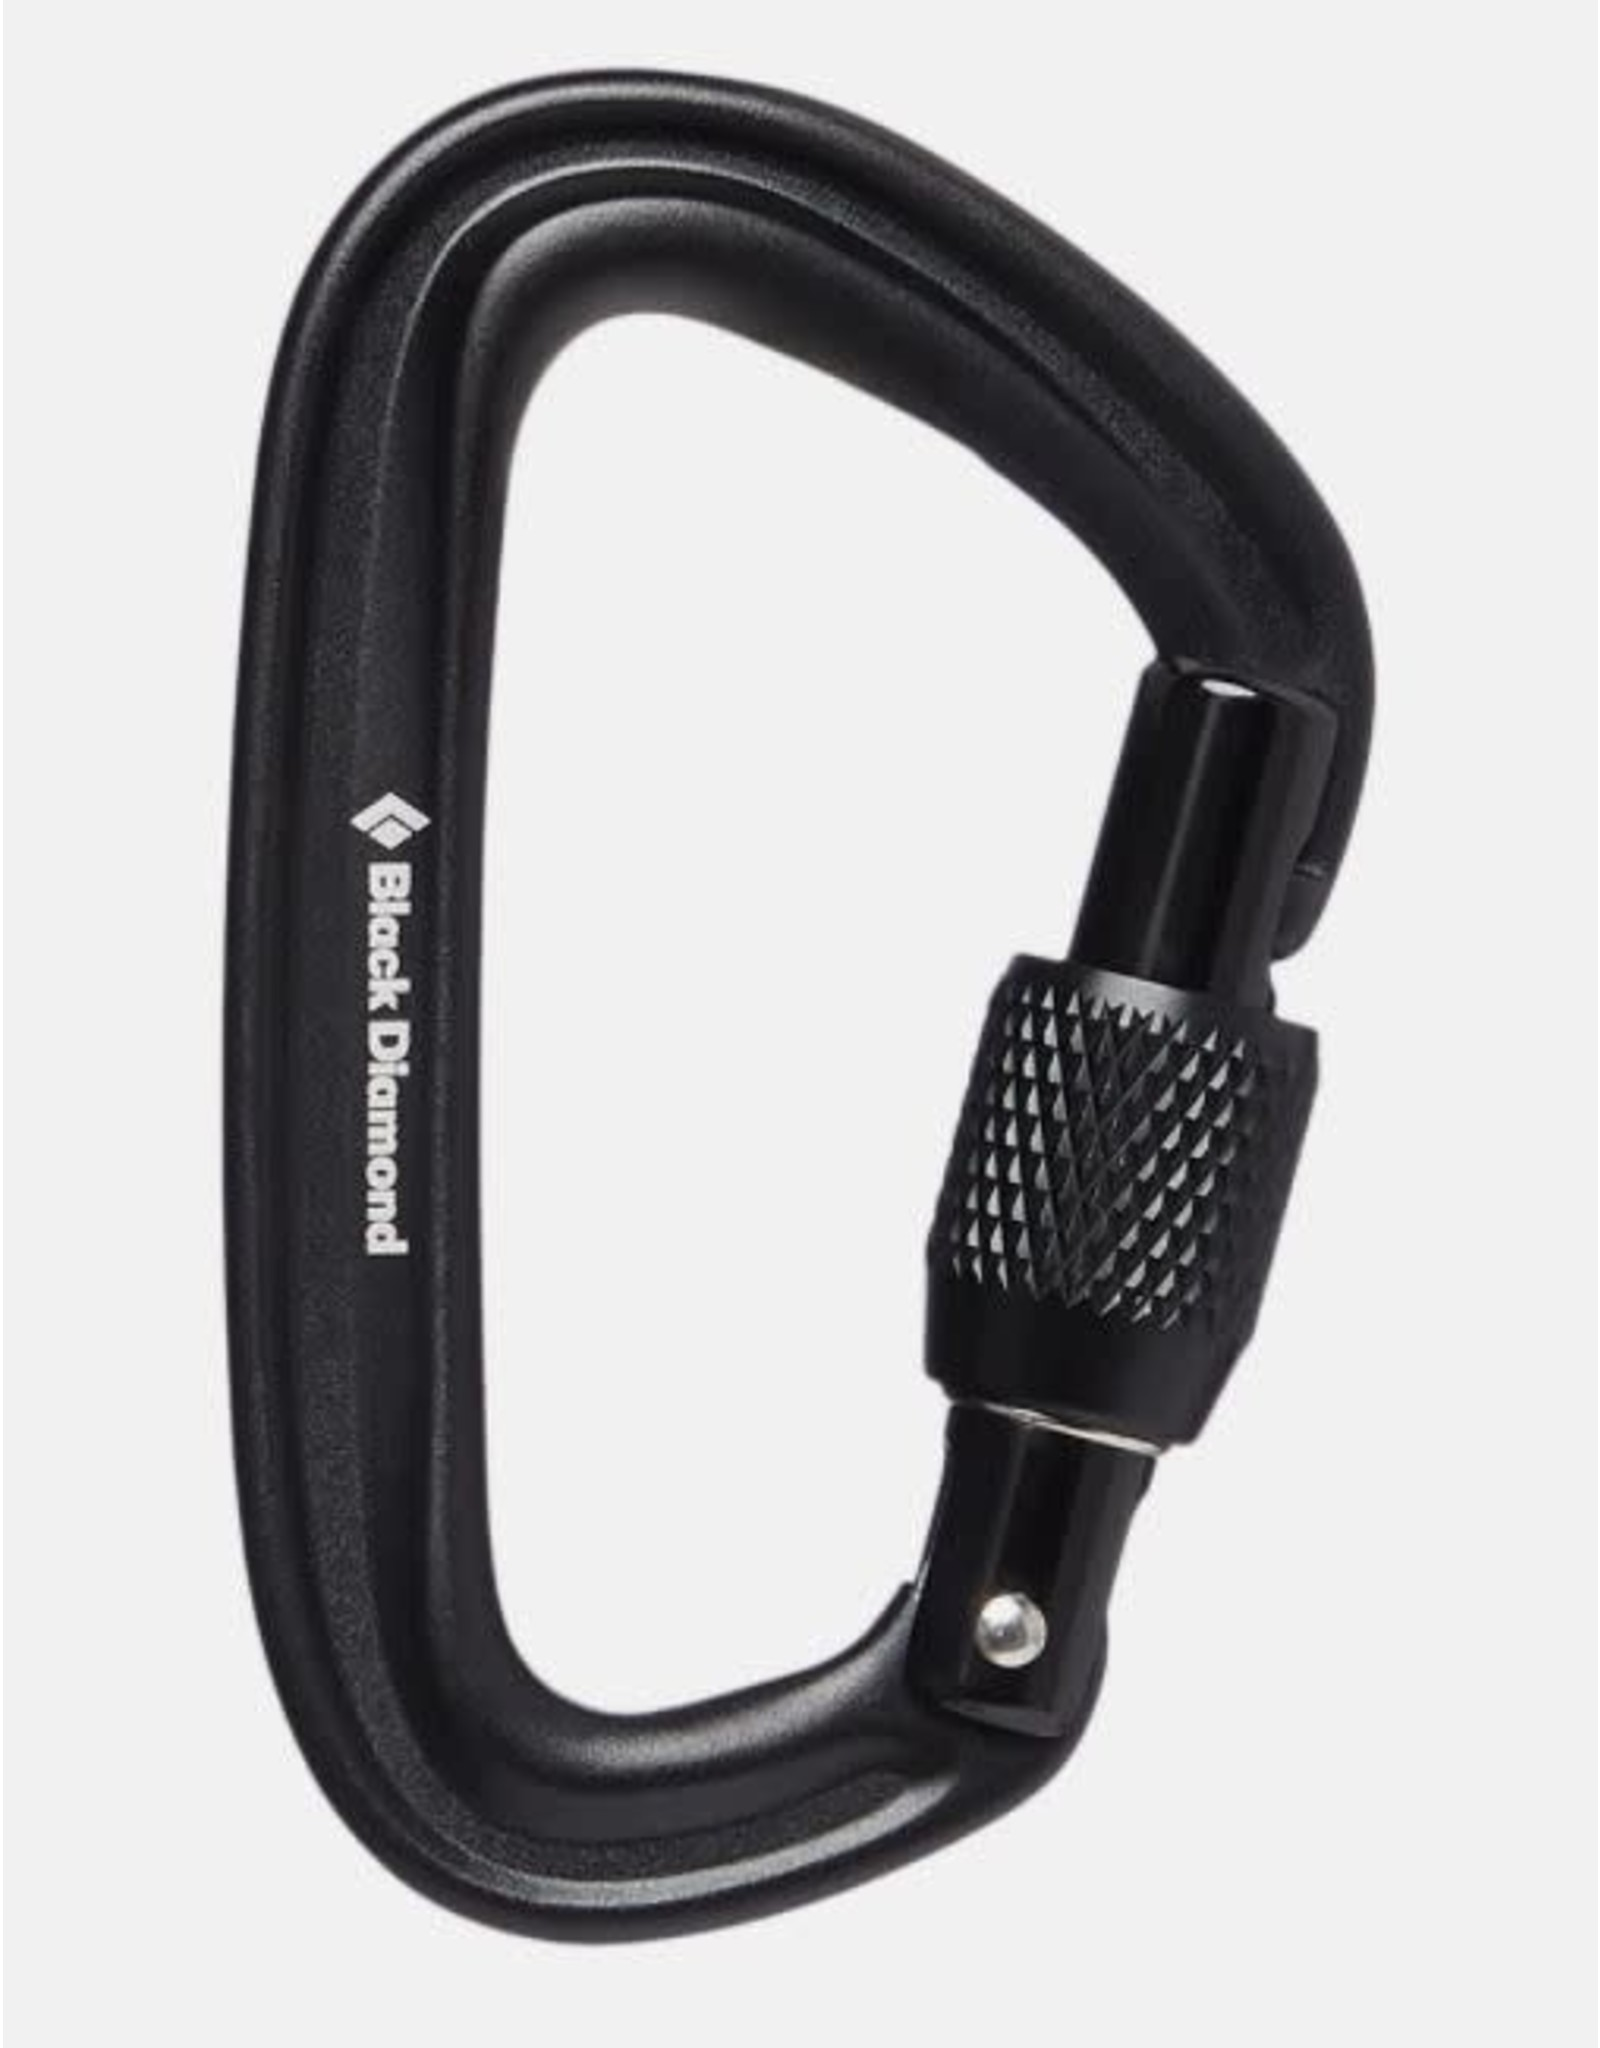 BLACK DIAMOND BLACK DIAMOND LITEFORGE SCREWGATE CARABINER